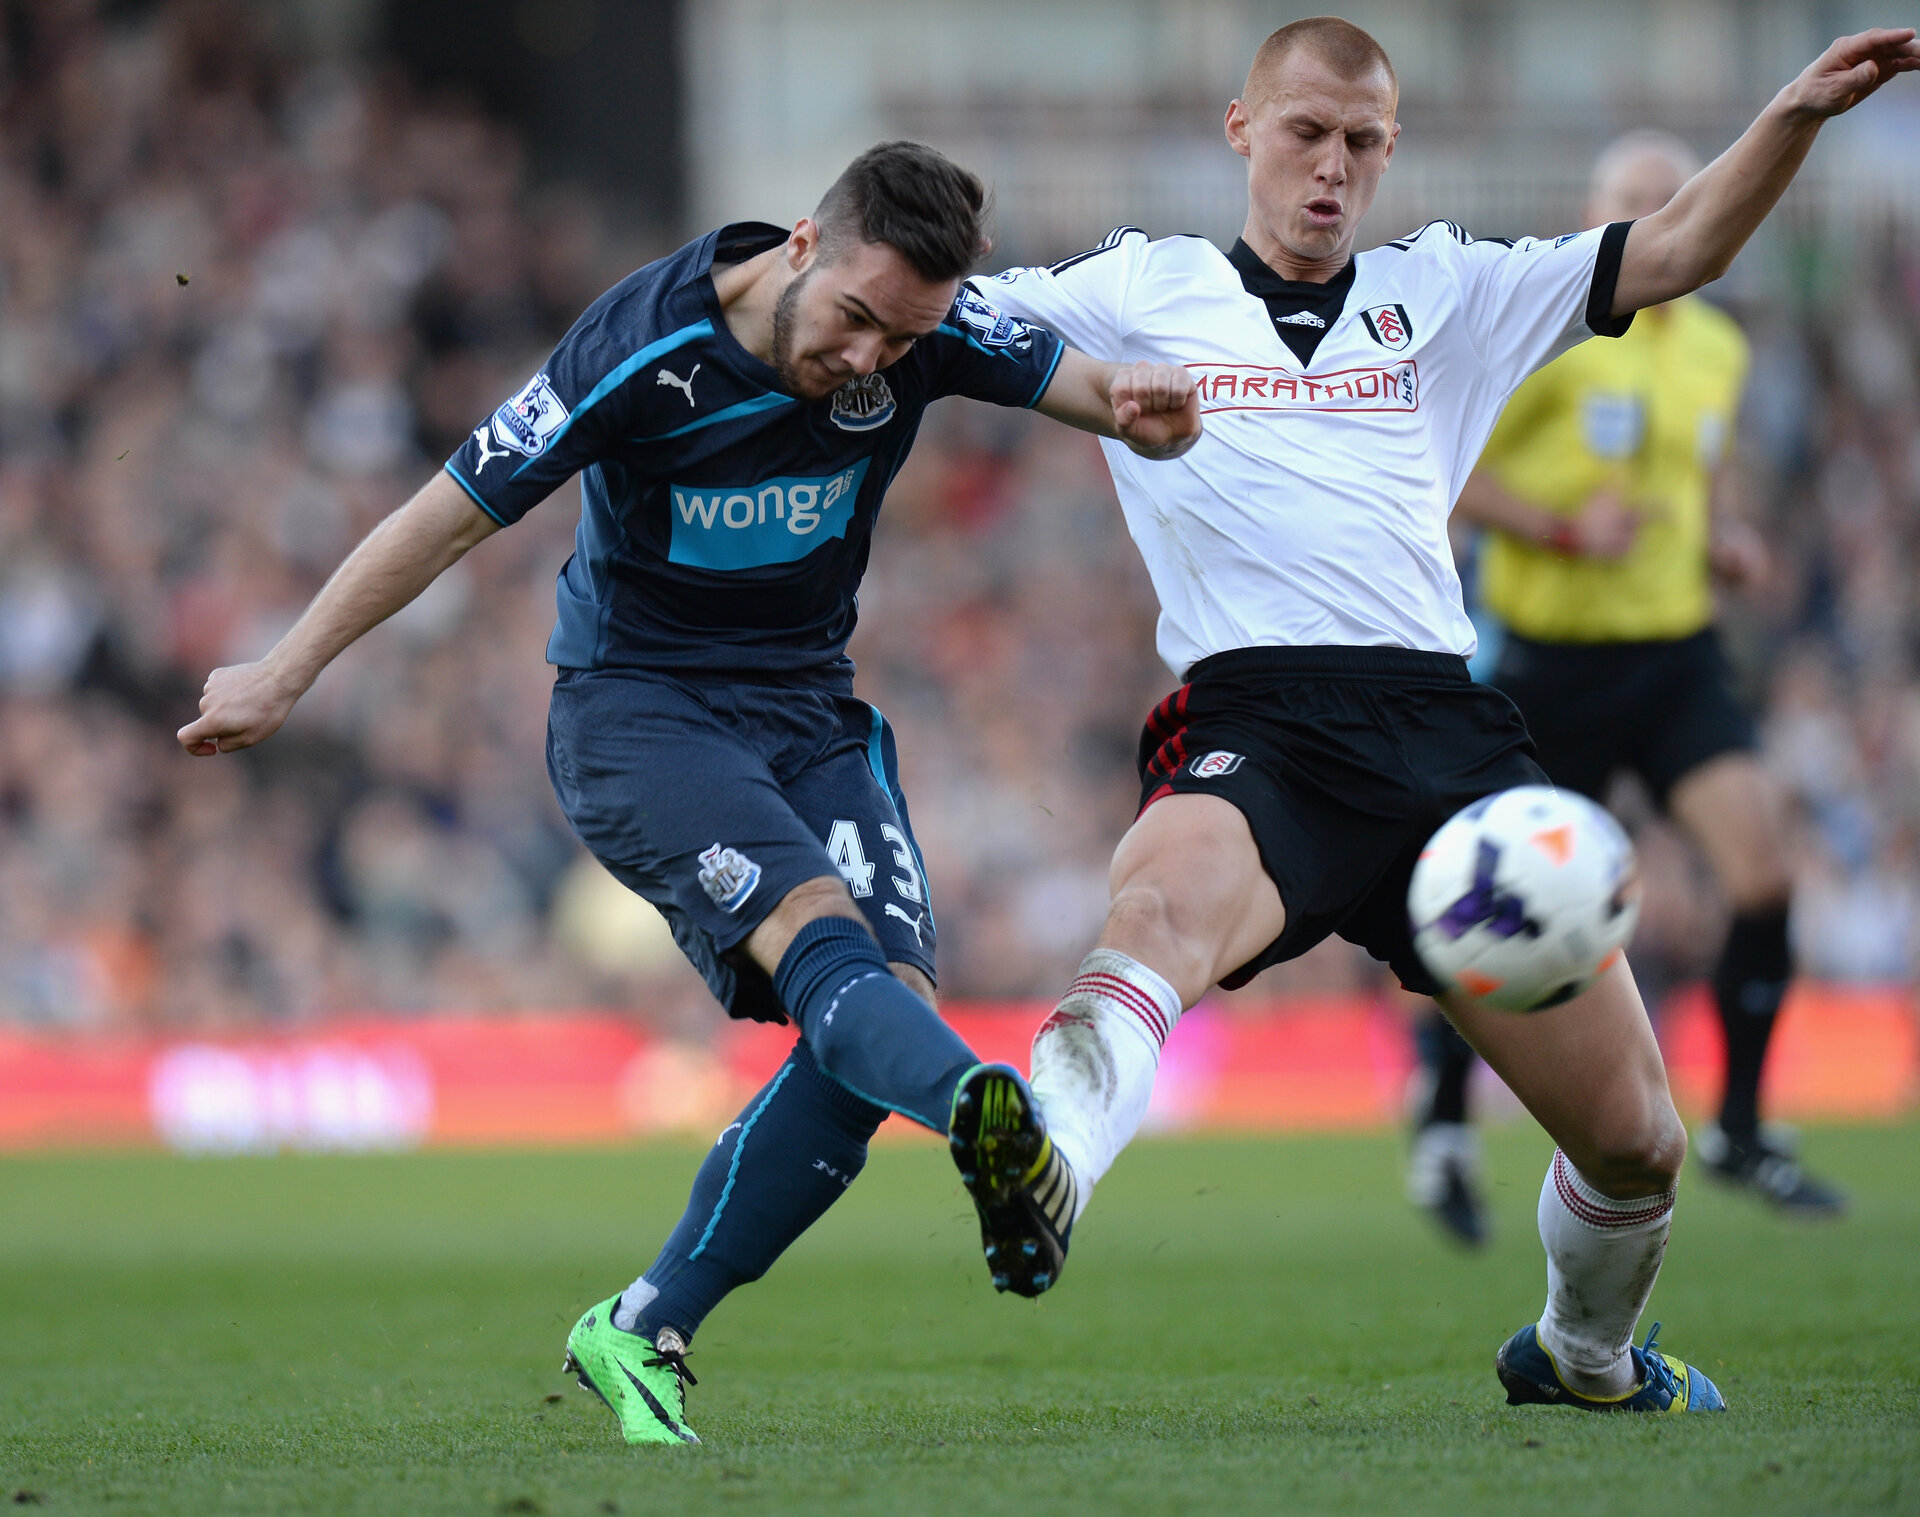 LONDON, ENGLAND - MARCH 15: Steve Sidwell of Fulham tackles Adam Armstrong of Newcastle United during the Barclays Premier League match between Fulham and Newcastle United at Craven Cottage on March 15, 2014 in London, England.  (Photo by Tony Marshall/Getty Images)